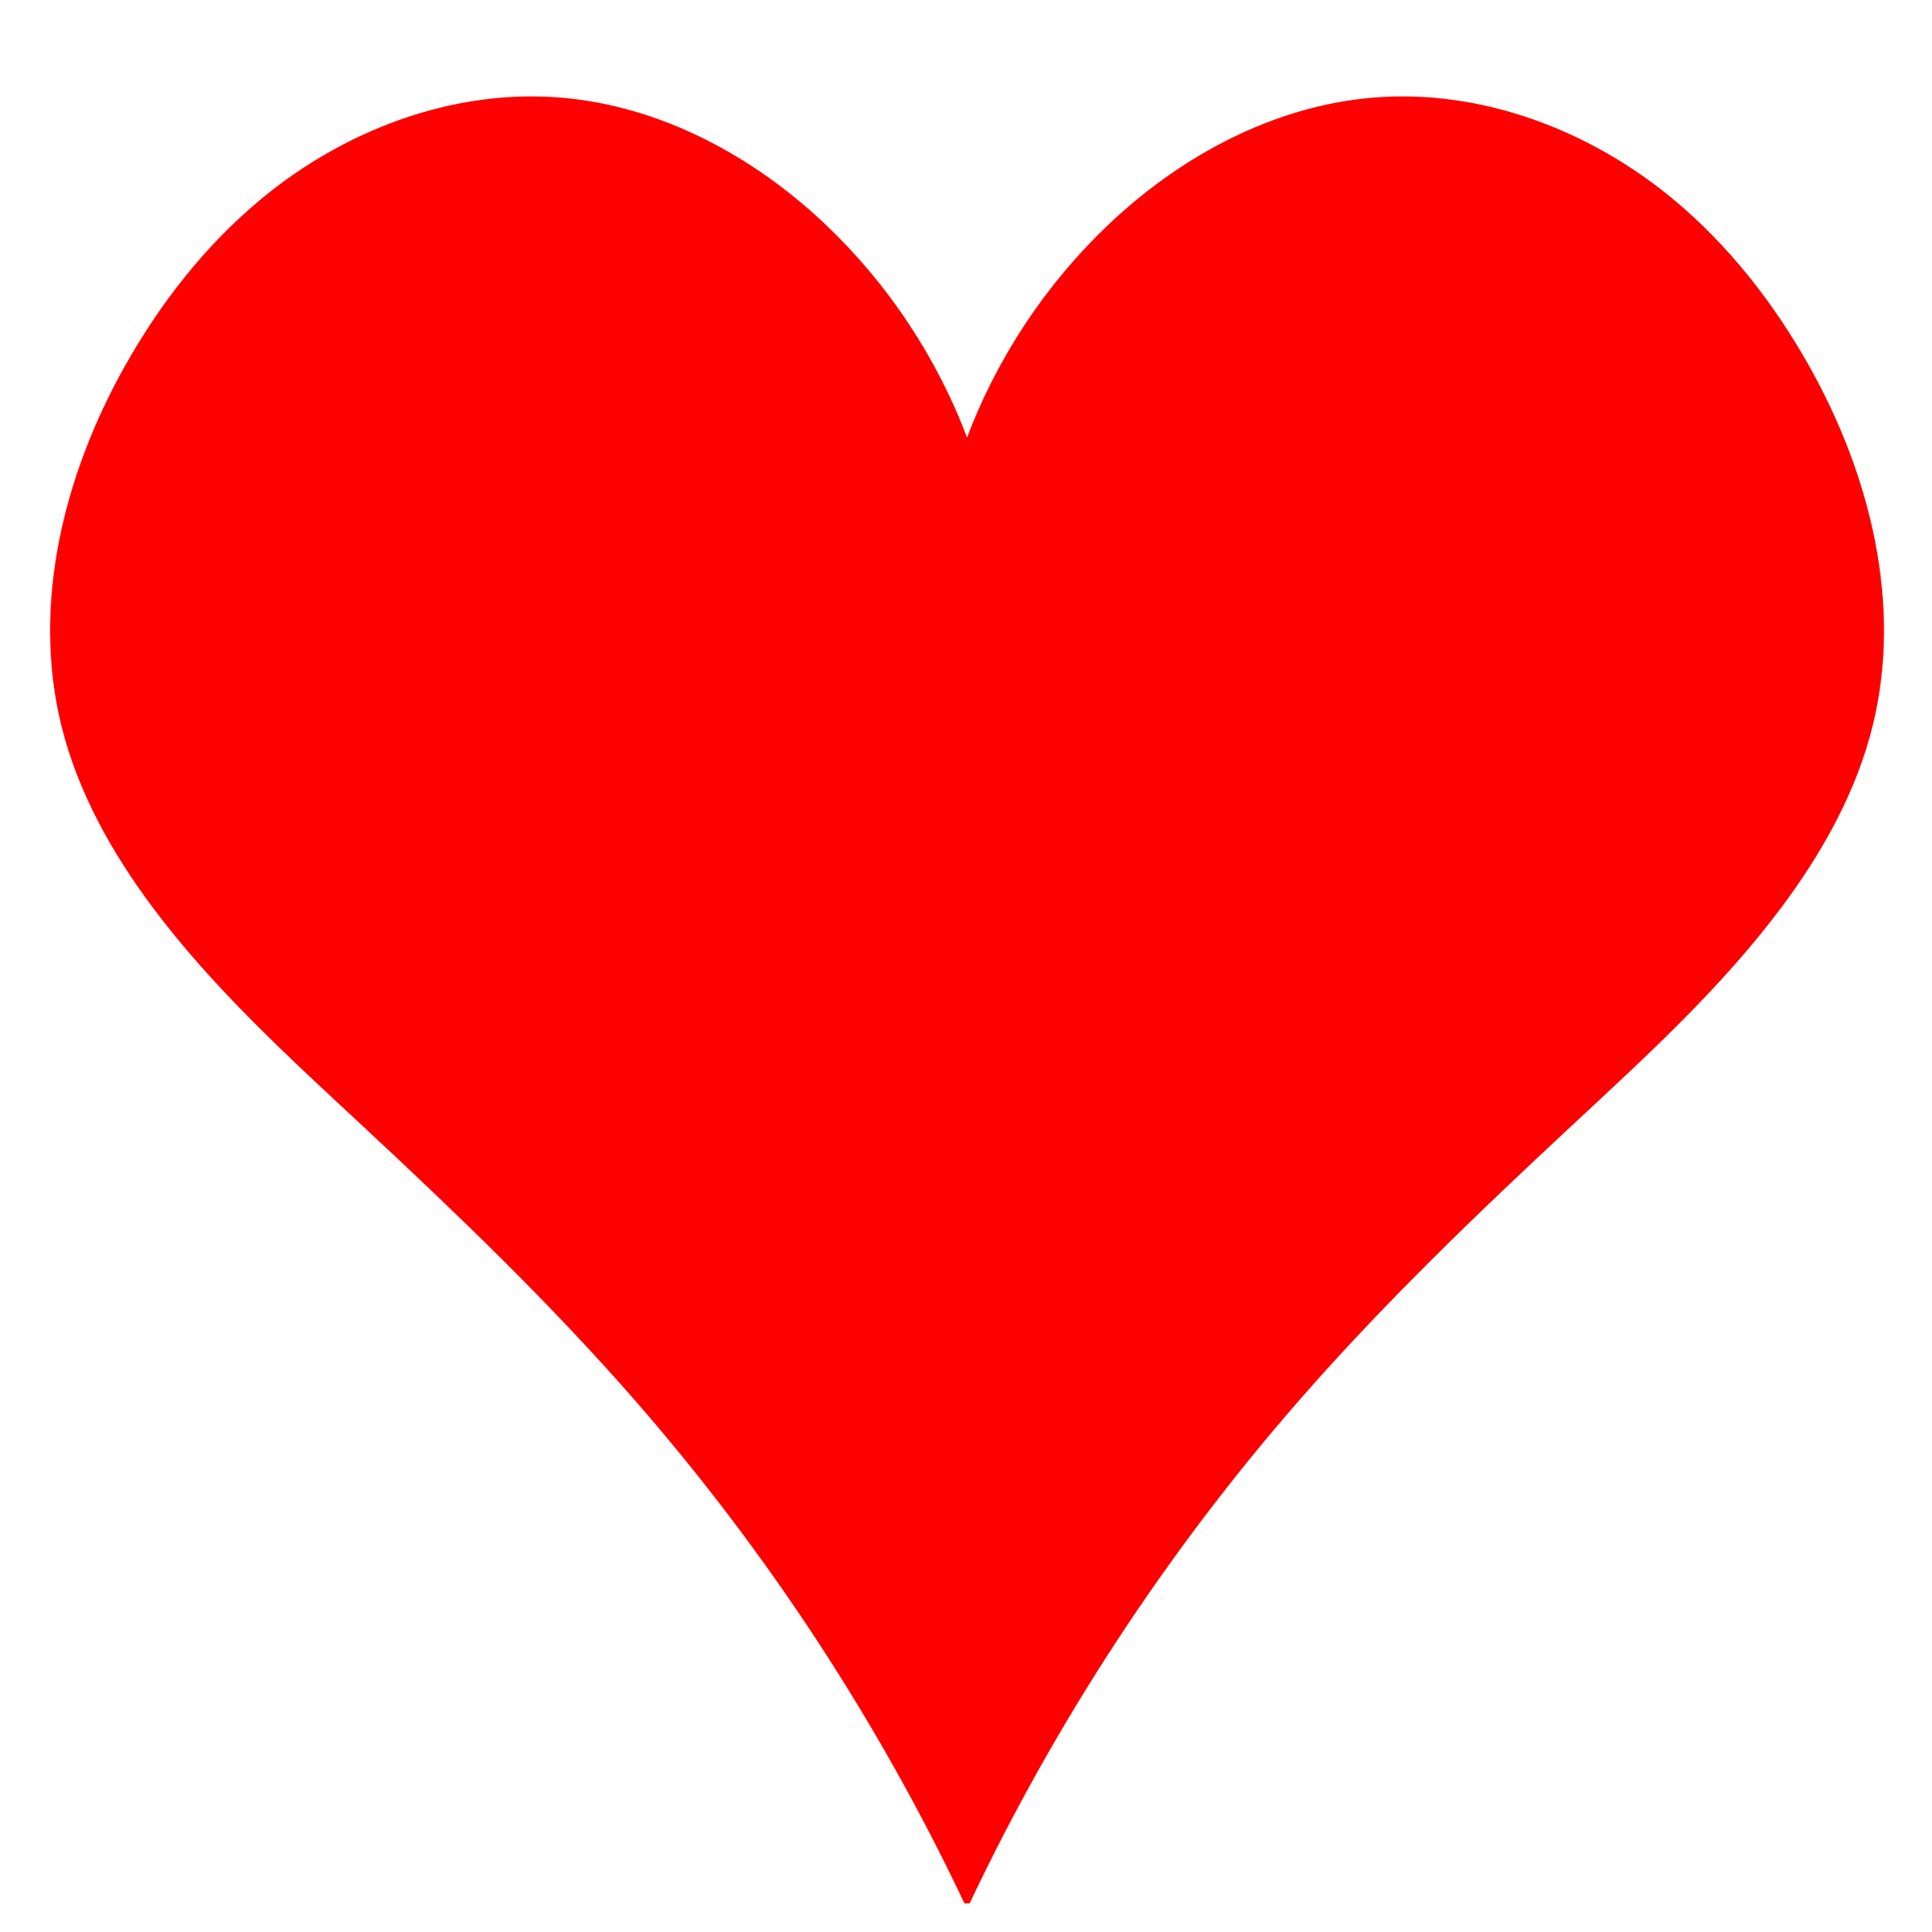 Red Heart Shape Clipart.